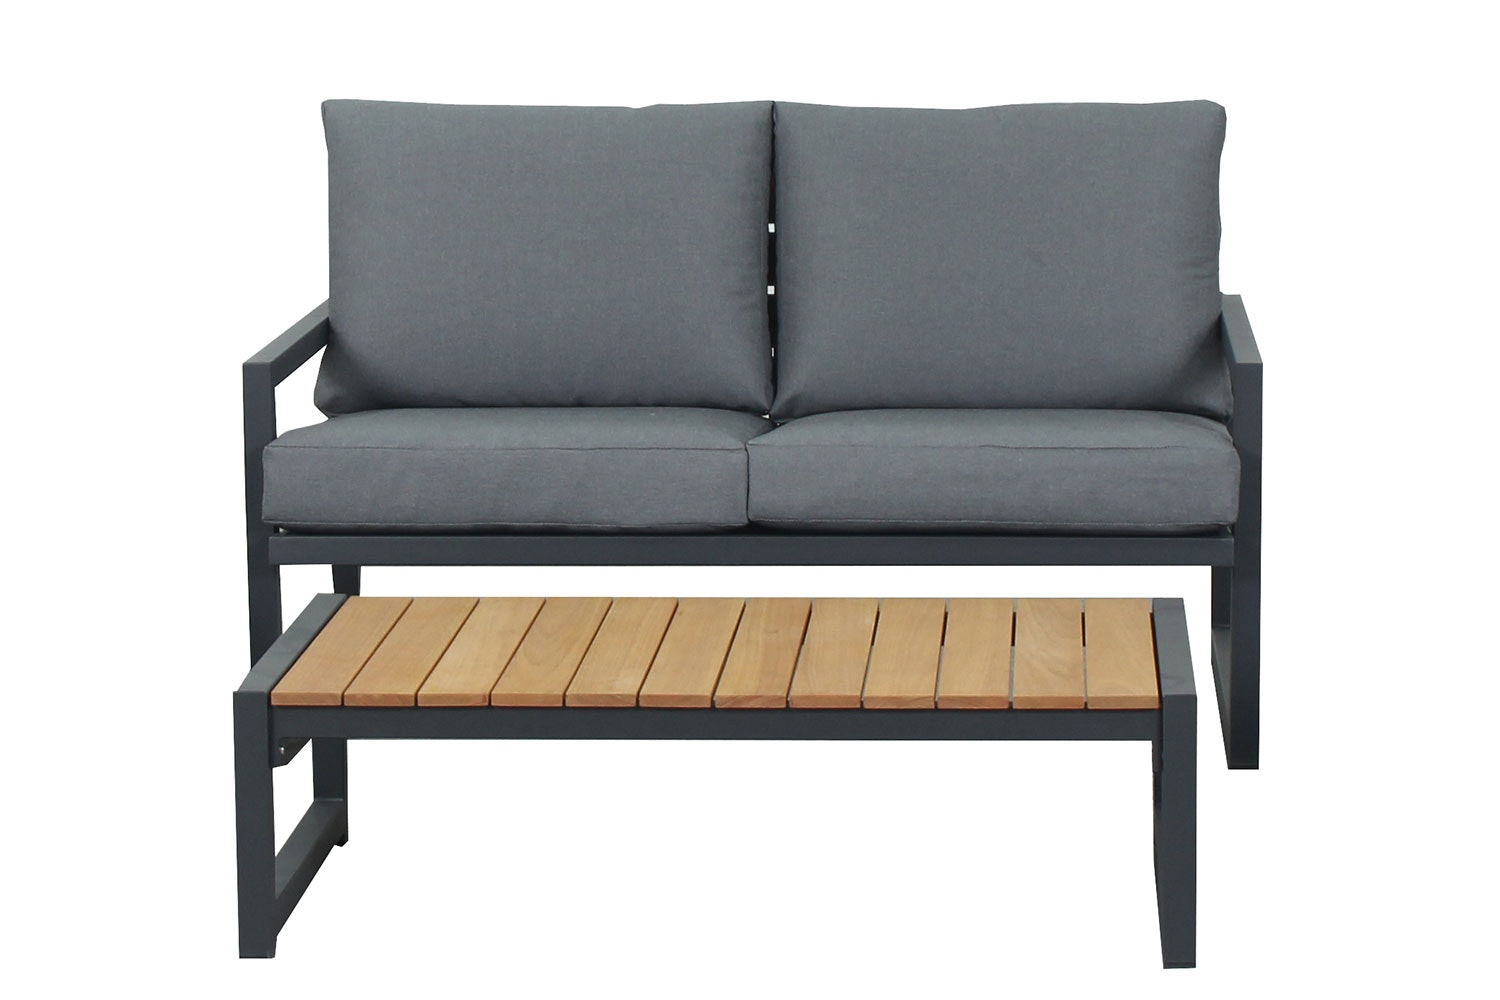 Catalina 4 Piece Outdoor Lounge Setting - 2 Seater Sofa